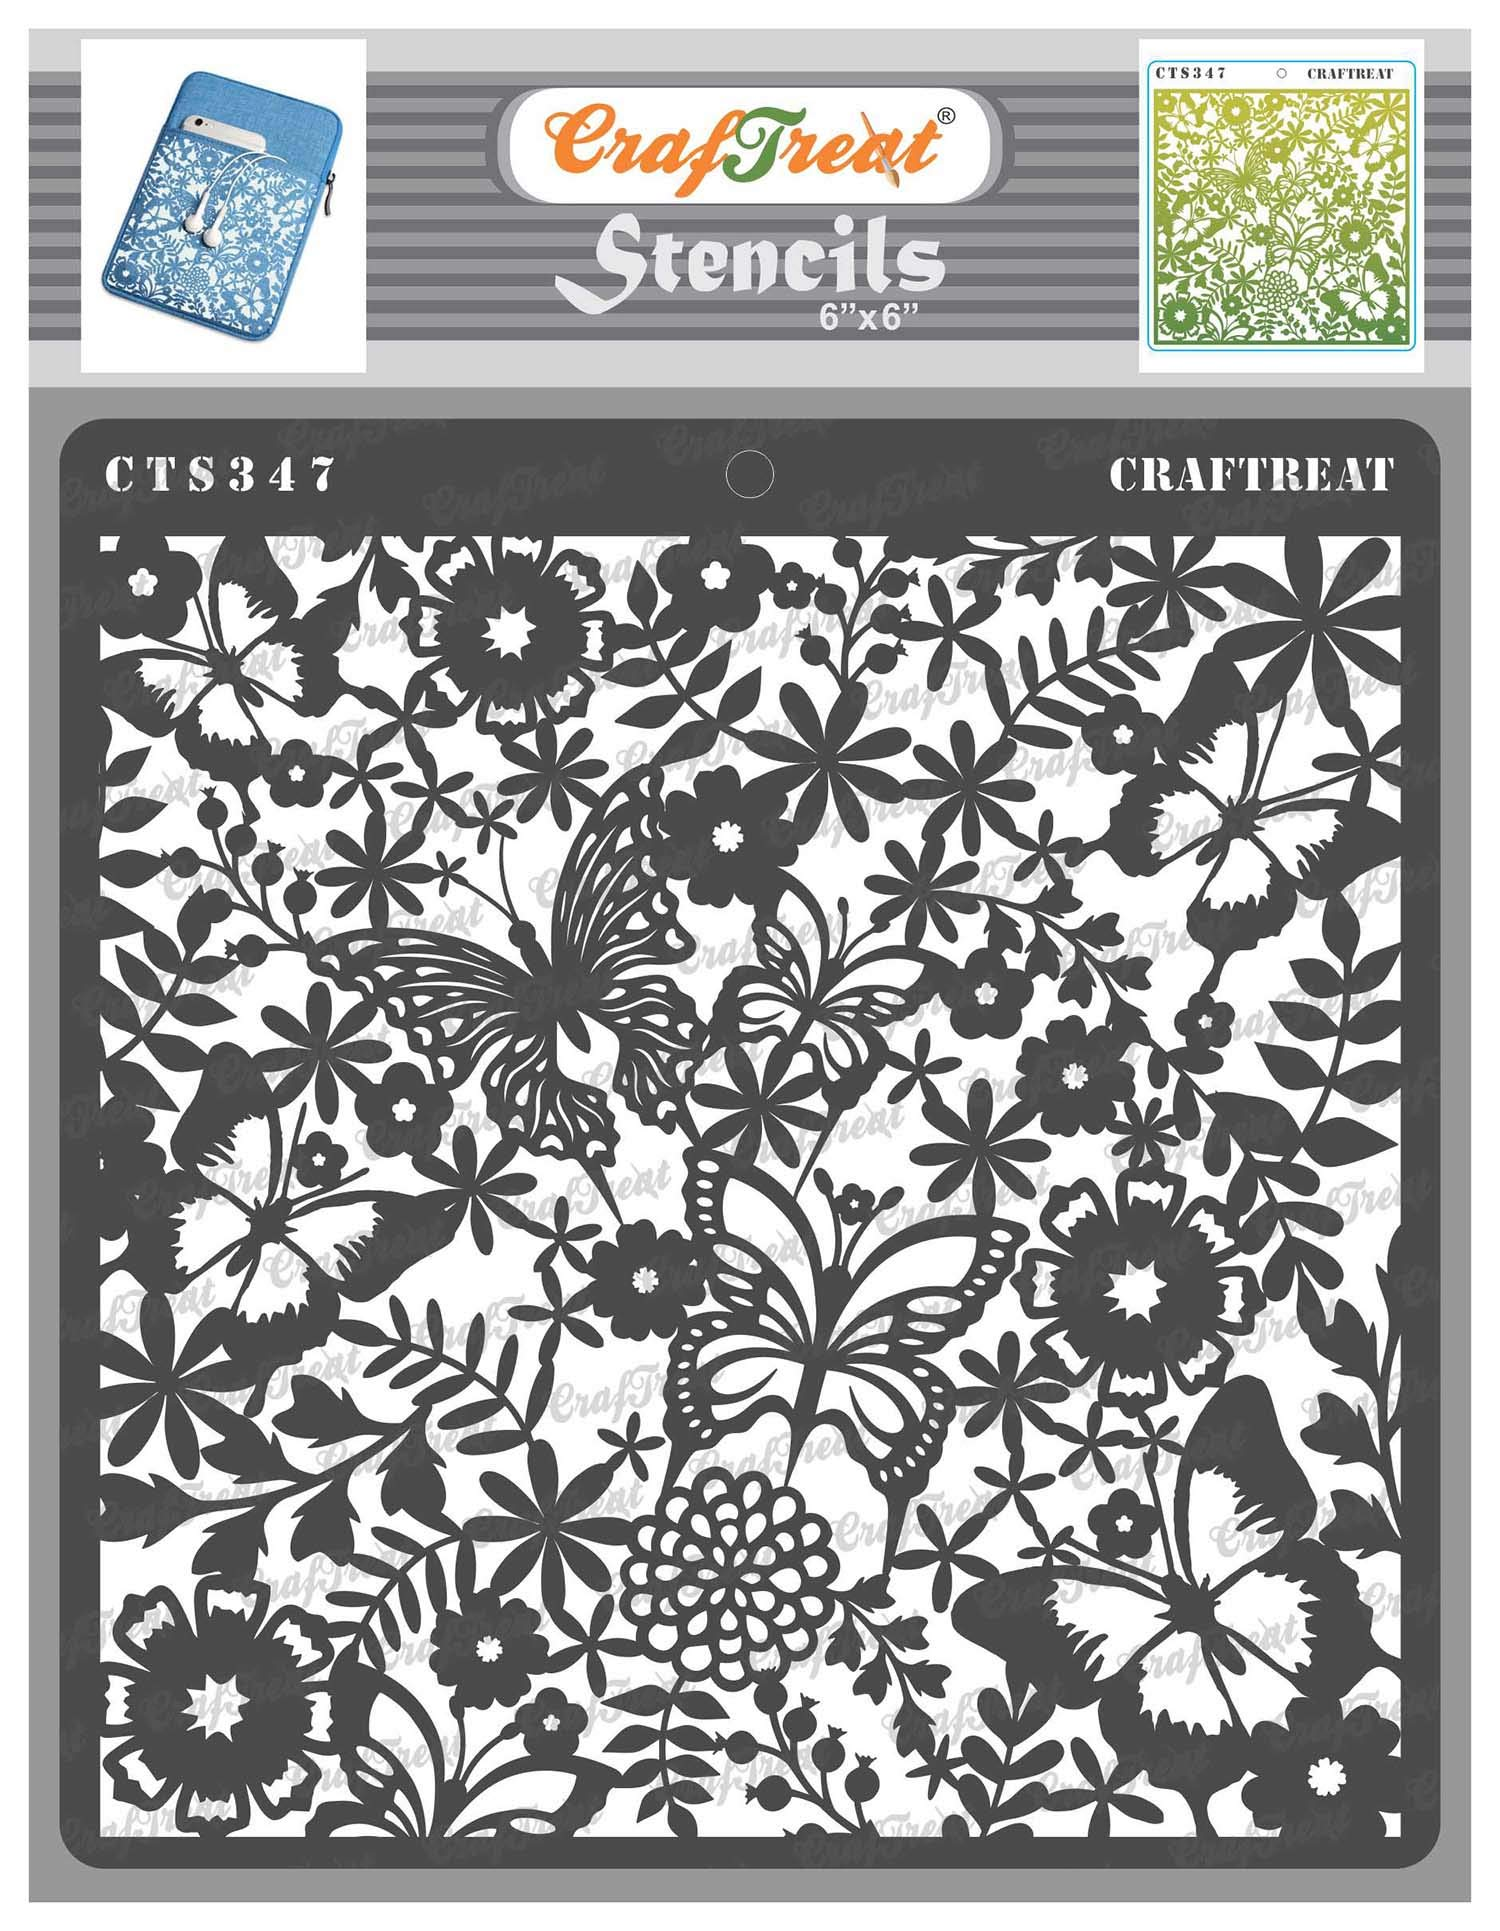 CrafTreat Butterfly Stencils for Painting on Wood, Canvas, Paper, Fabric, Floor, Wall and Tile - Butterfly Delight - 6x6 Inches - Reusable DIY Art and Craft Stencils - Butterfly Stencil Template